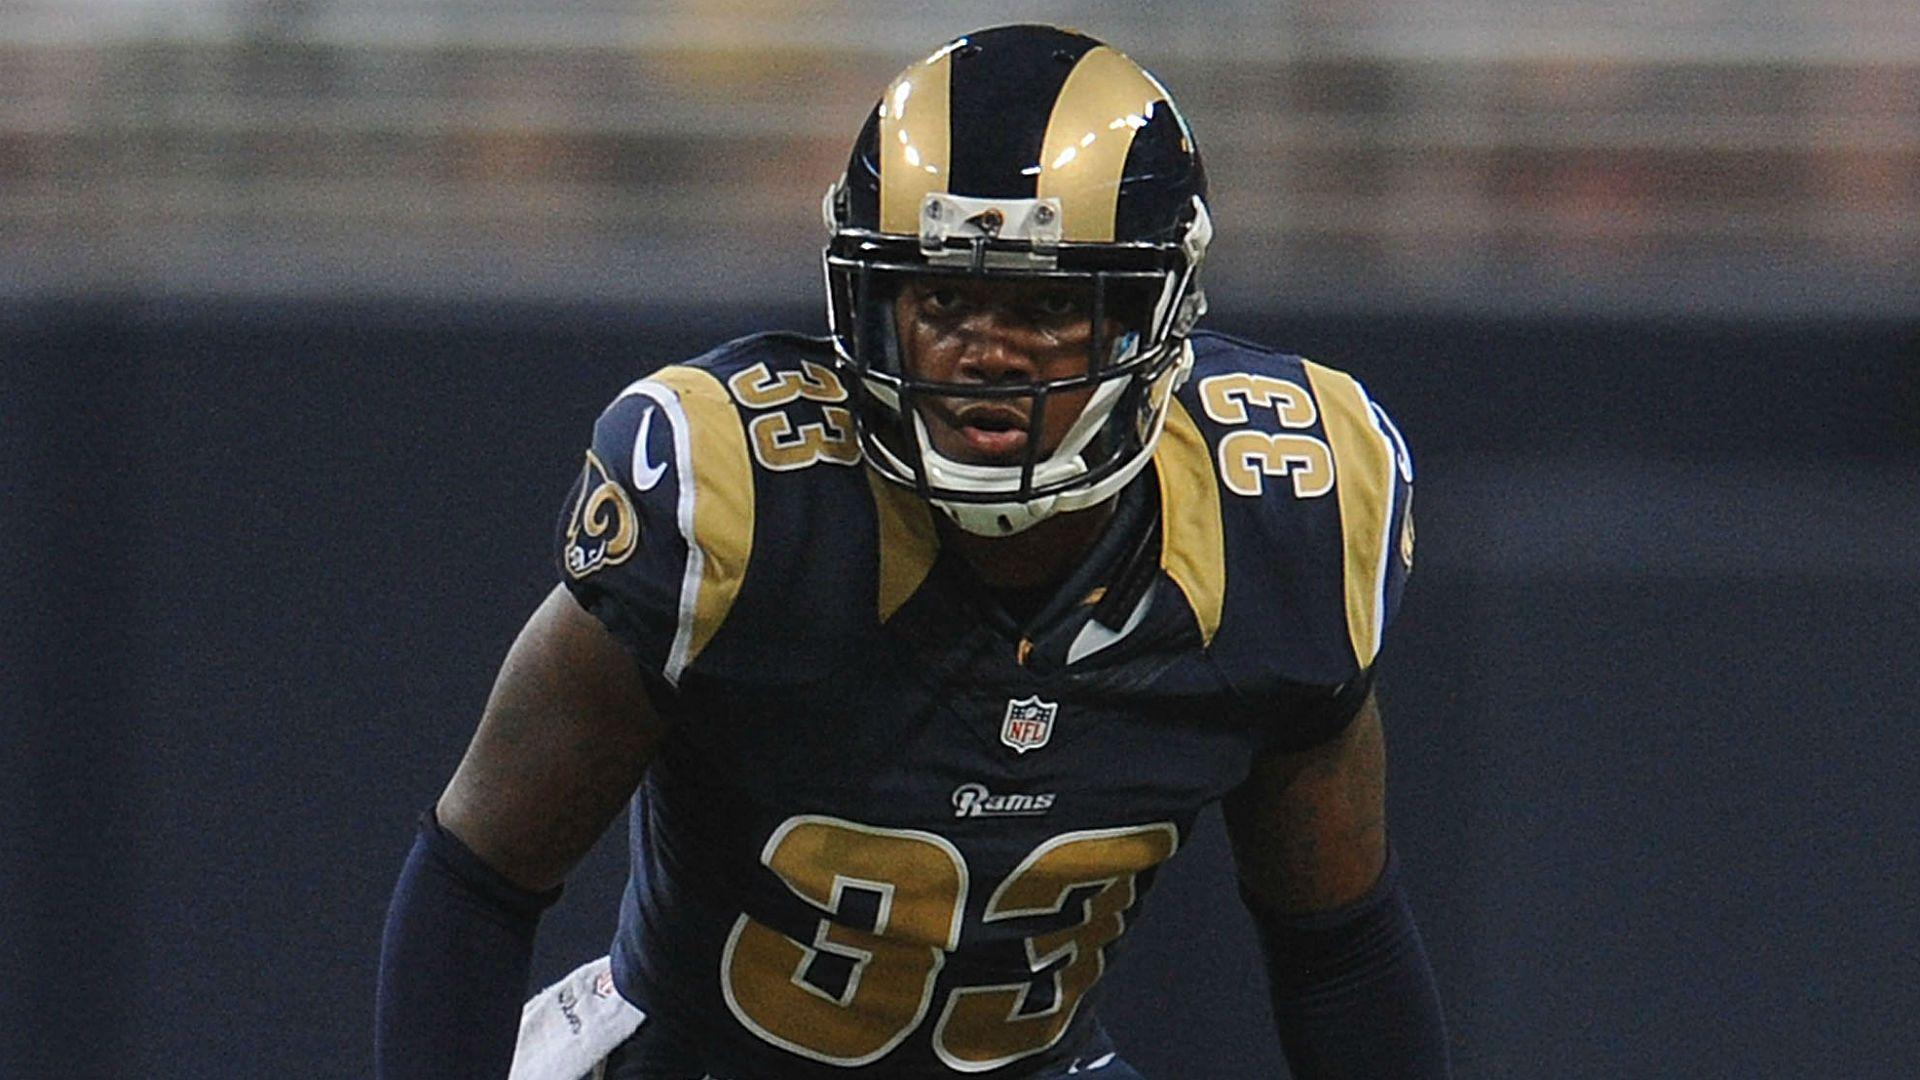 Rams lose E.J. Gaines for season after surgery, report says | NFL ...